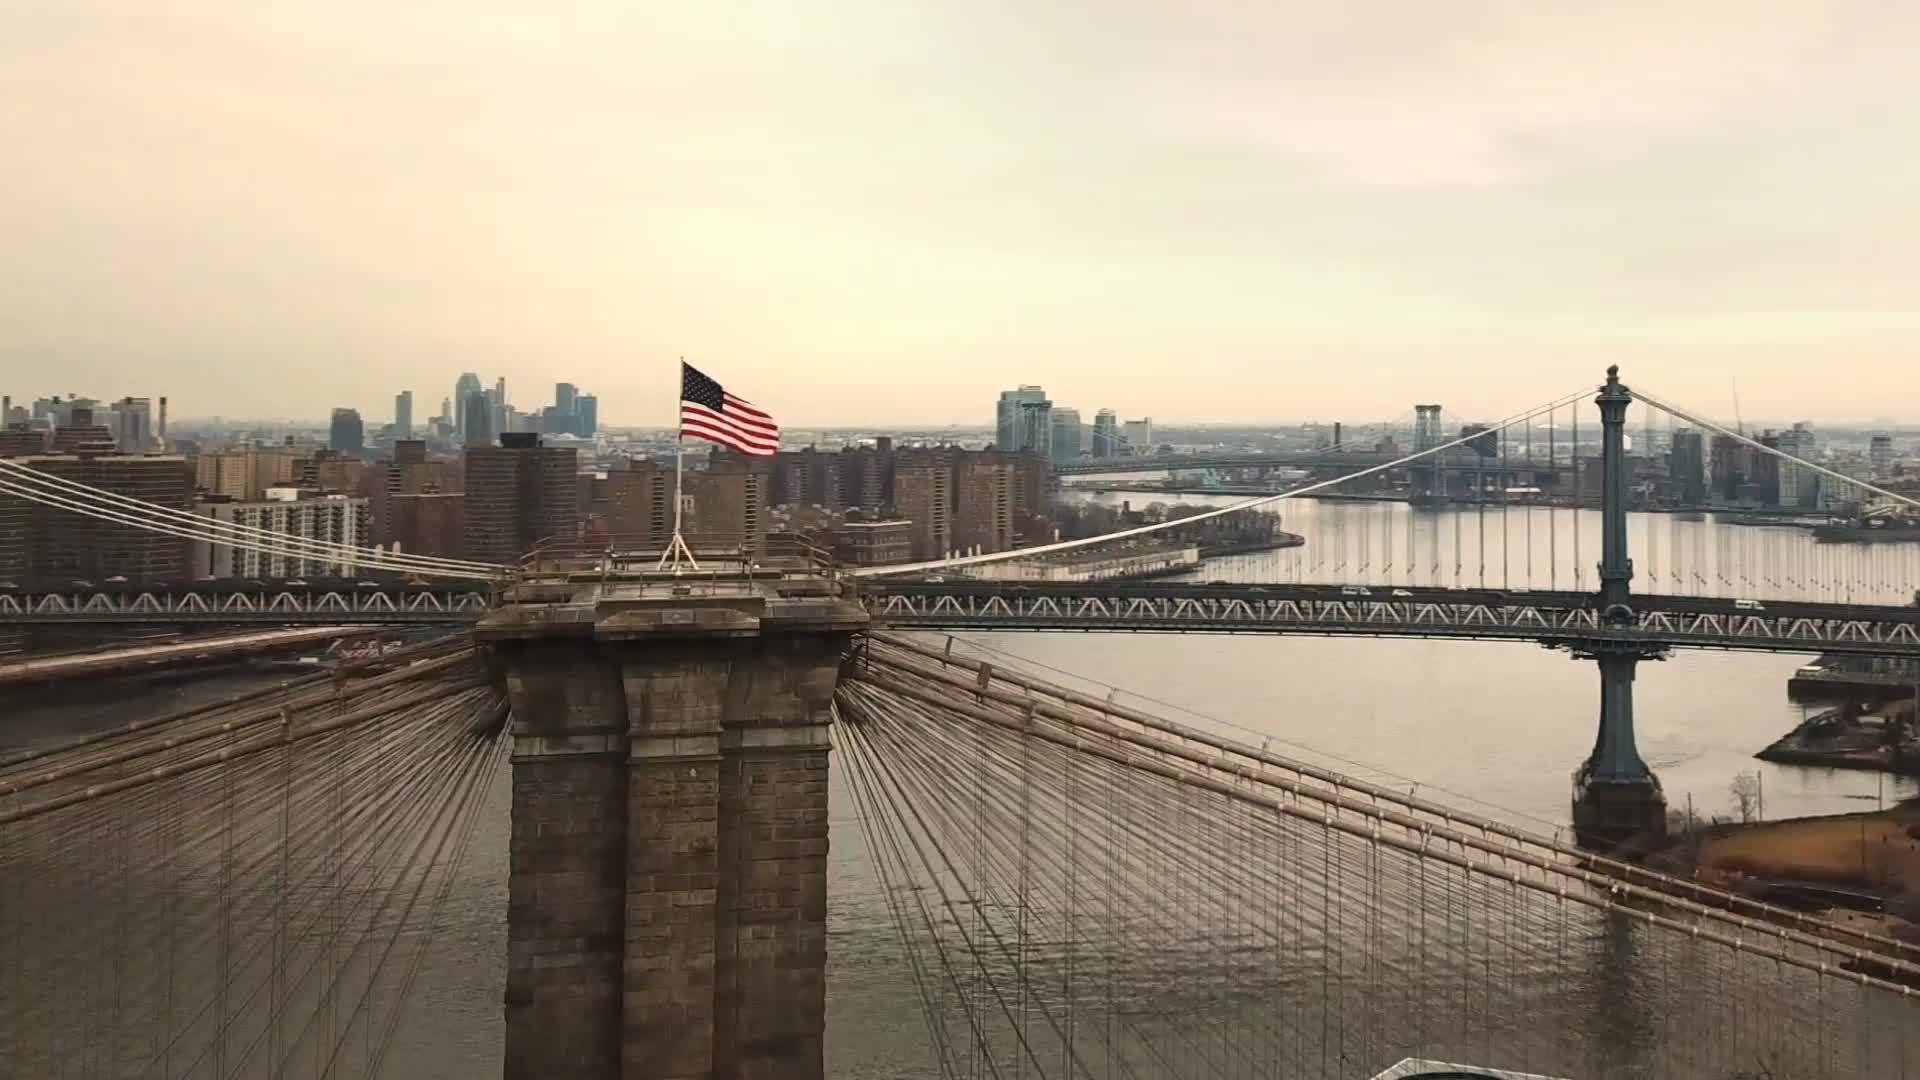 Brooklyn Bridge with American flag aerial circling toward Manhattan skyline with Freedom Tower in 1080 HD